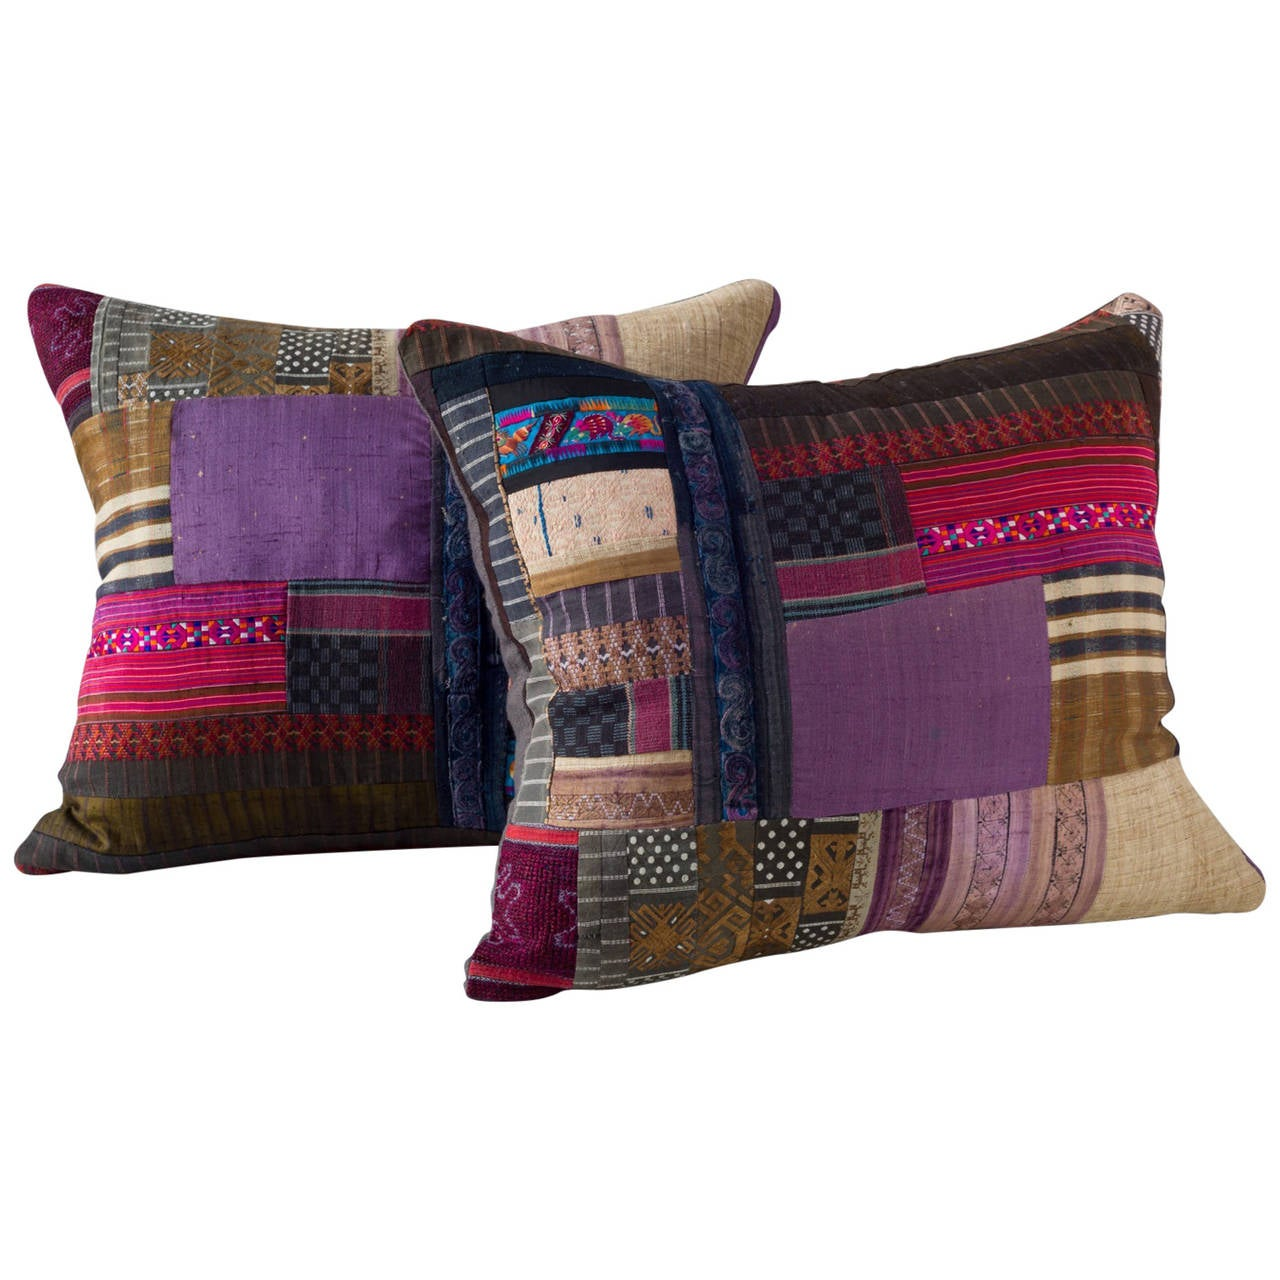 Piecework Embroidery Cushion For Sale at 1stdibs